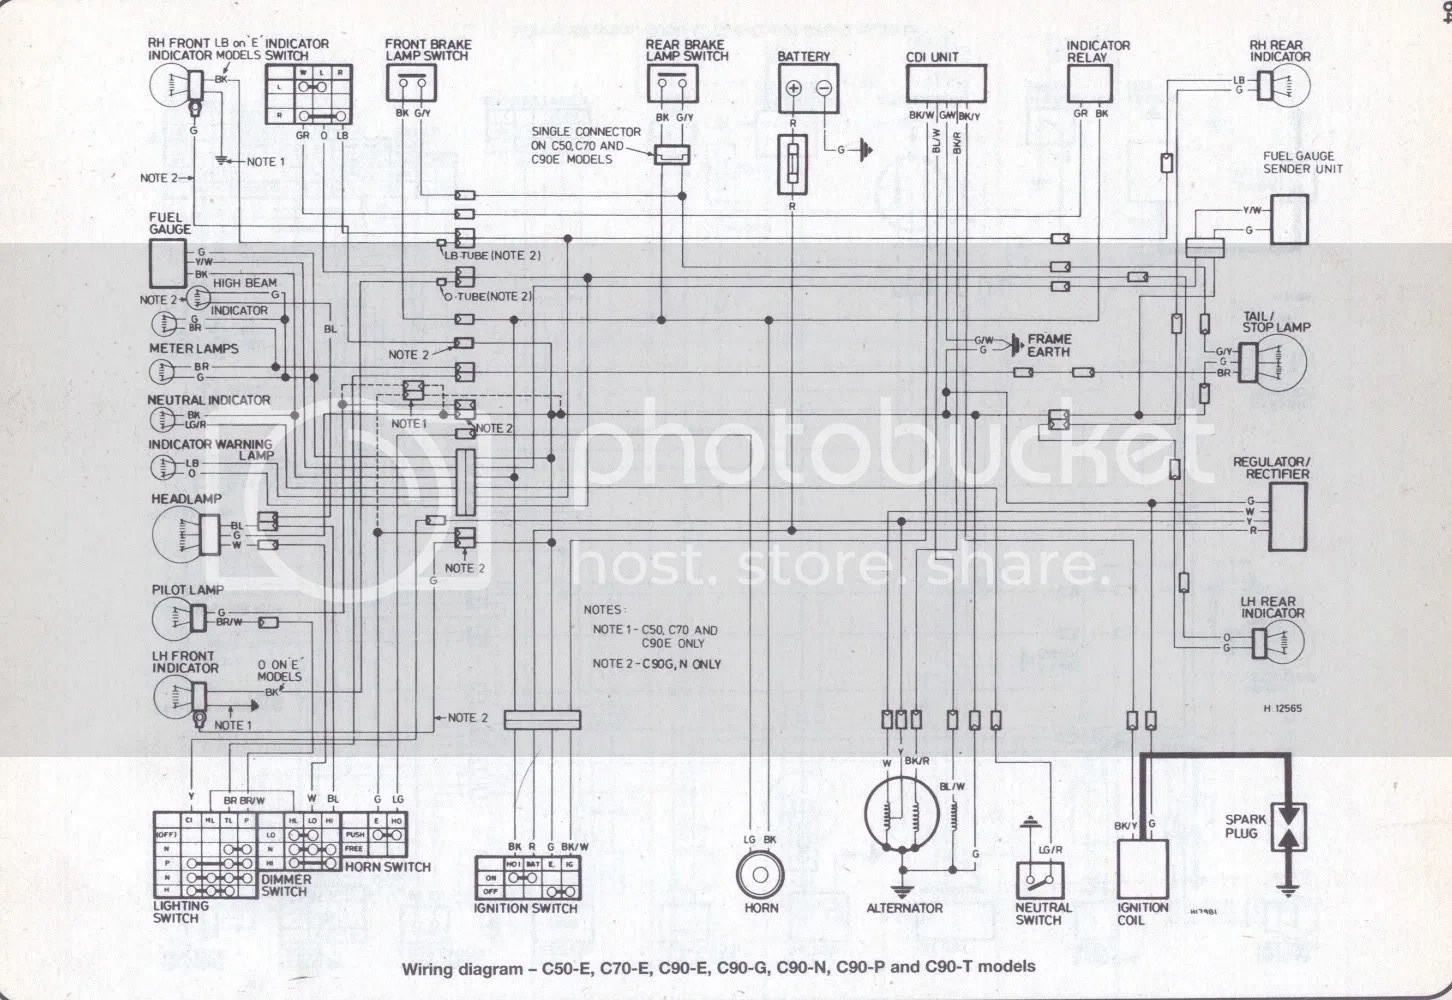 hight resolution of honda 90 wiring diagram wiring diagram operations honda 90 wiring diagram honda 90 wiring diagram